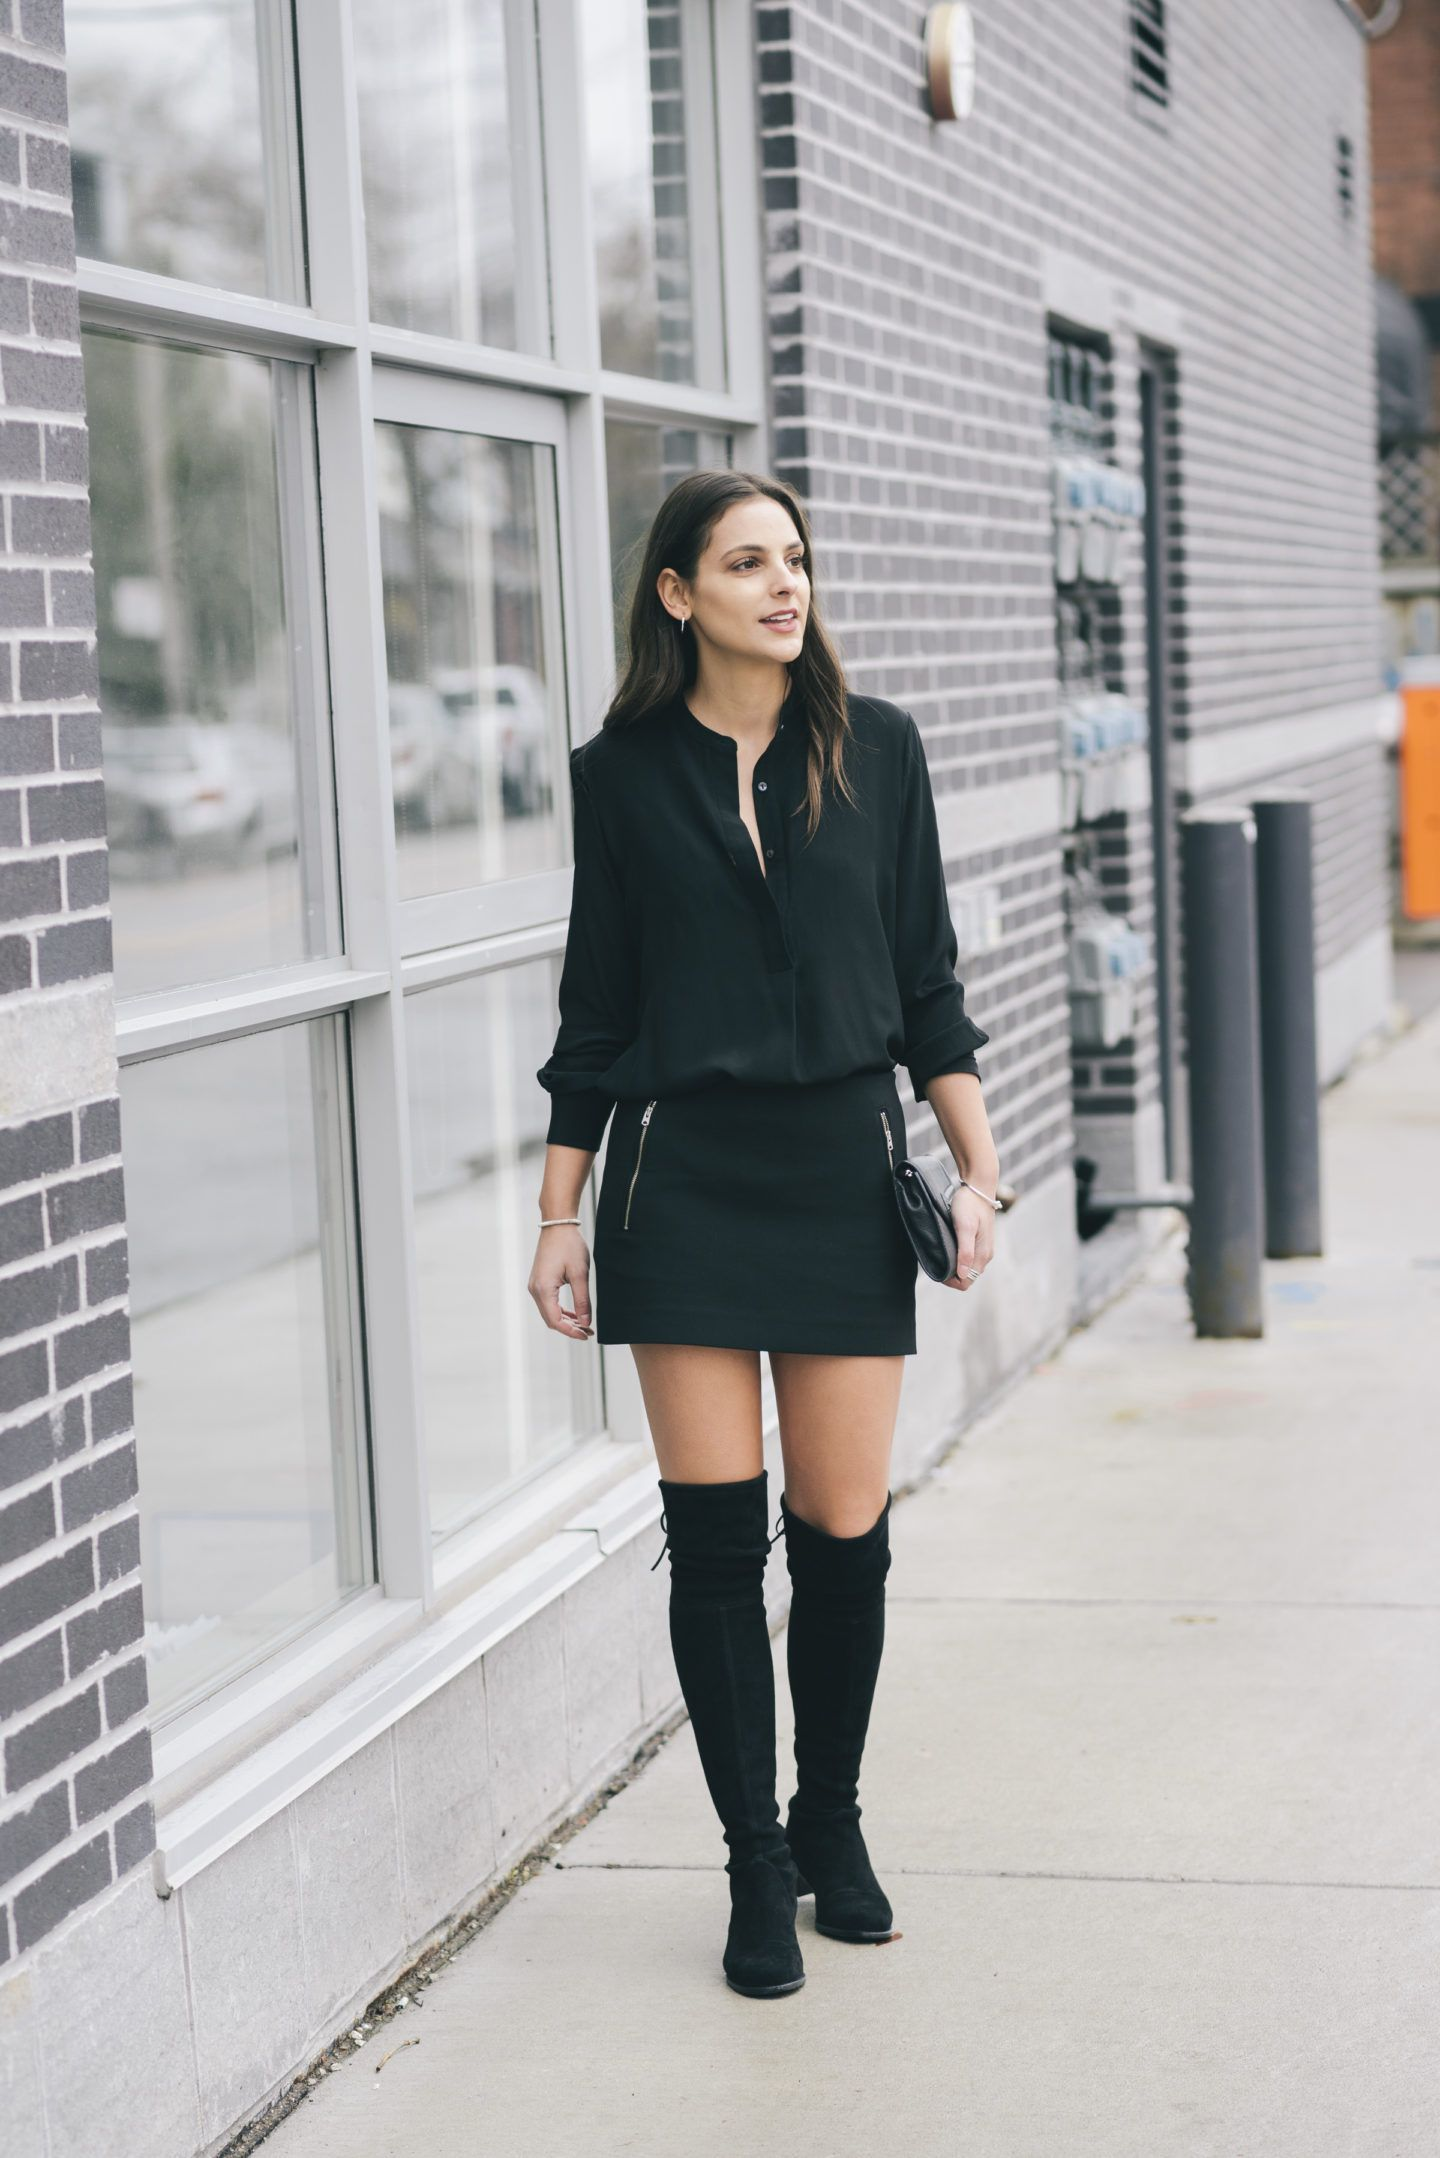 4243b821a71 Stuart Weitzman  Midland  Over The Knee Boots. More of this look on  www.christinadesantis.com  overthekneeboots  stuartweitzman  fashion